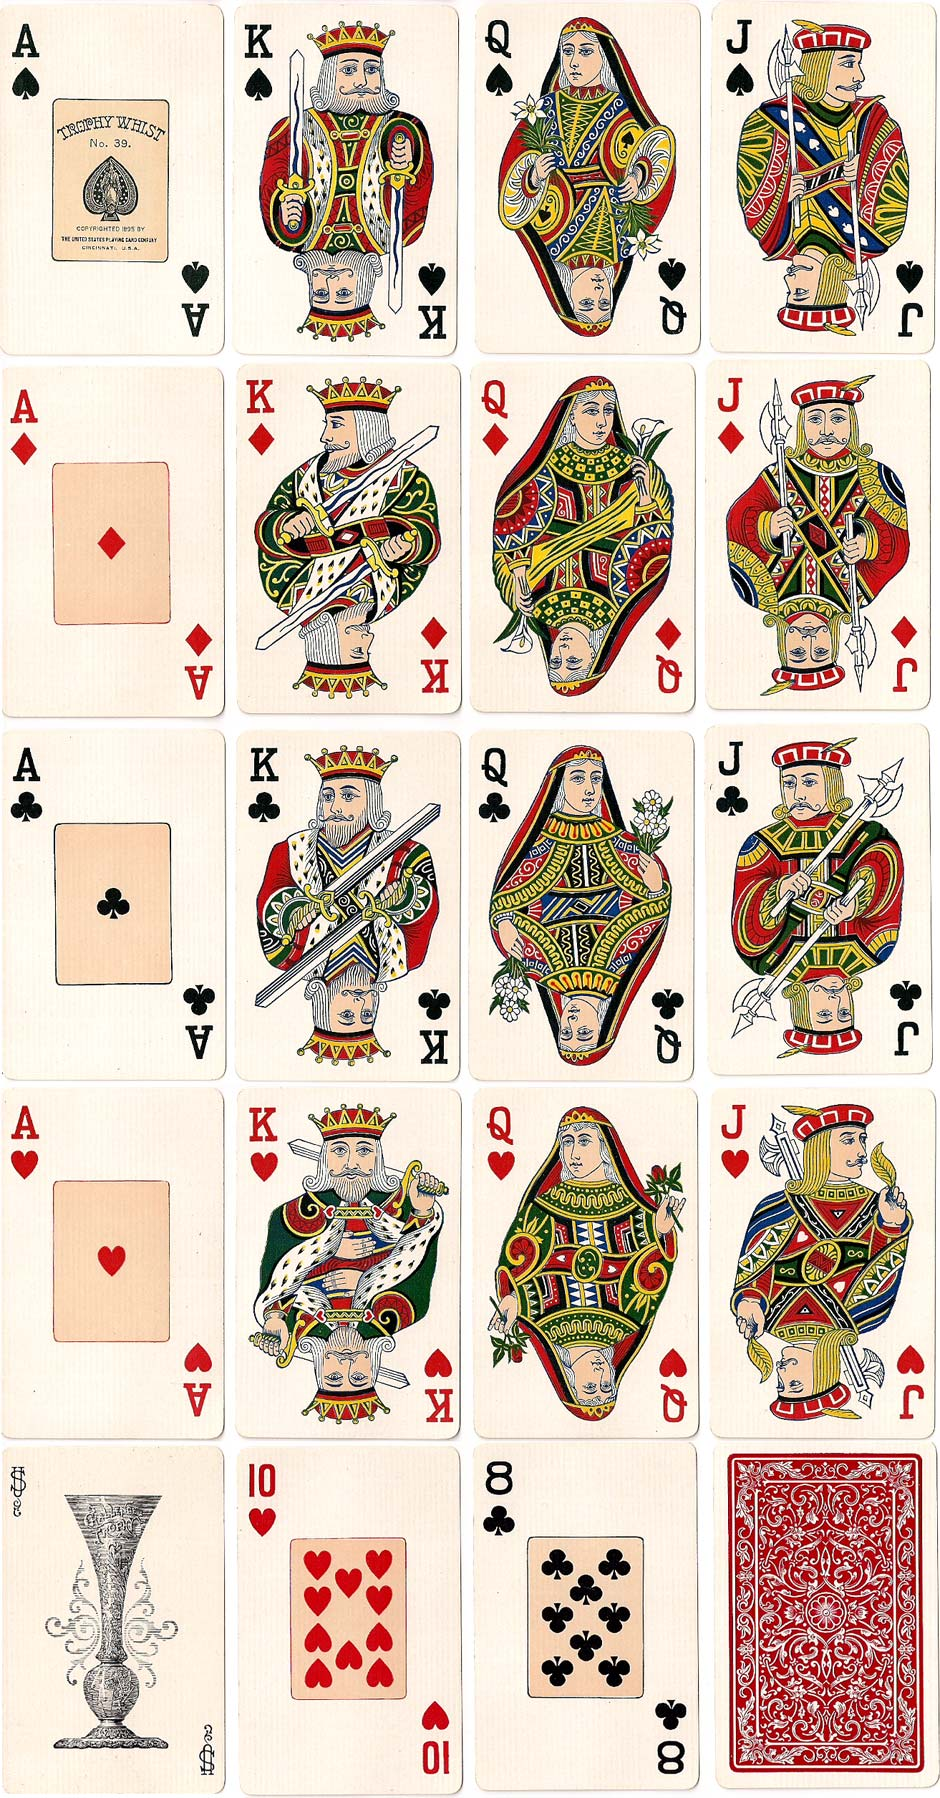 Trophy Whist No.39 playing cards published by the the United States Playing Card Co., 1895